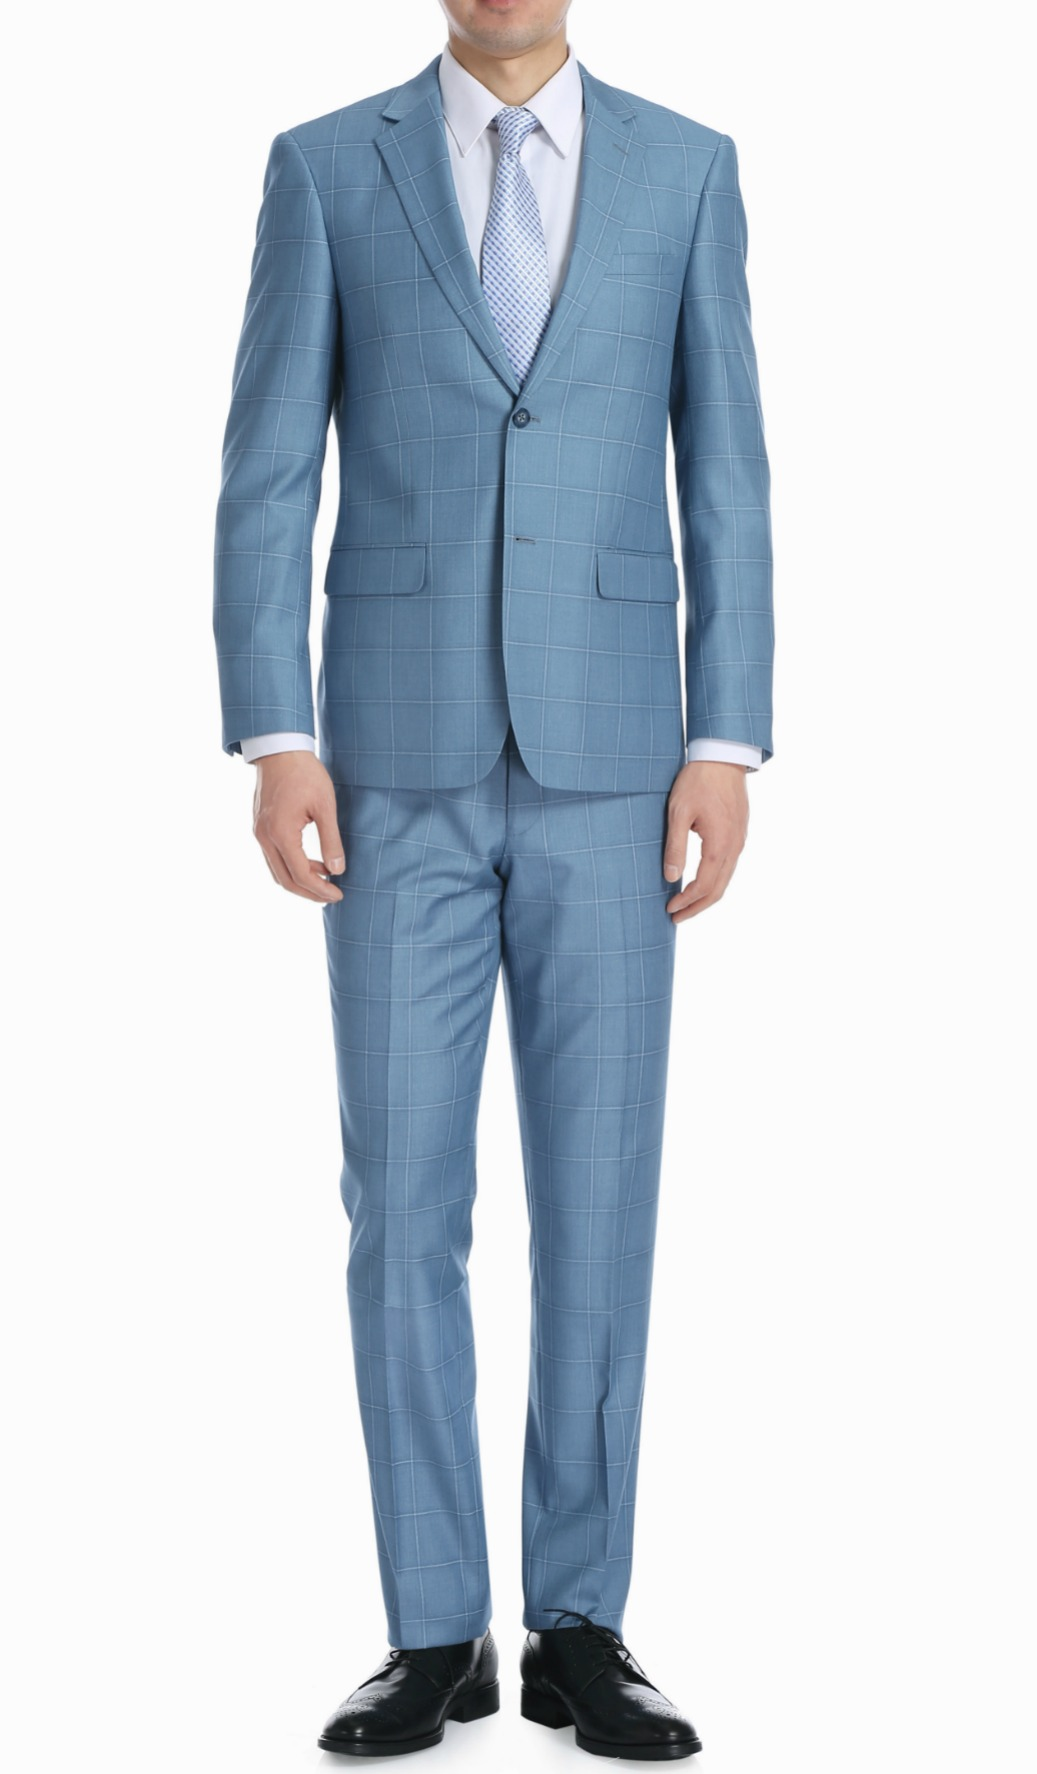 Light Blue Plaid Suit